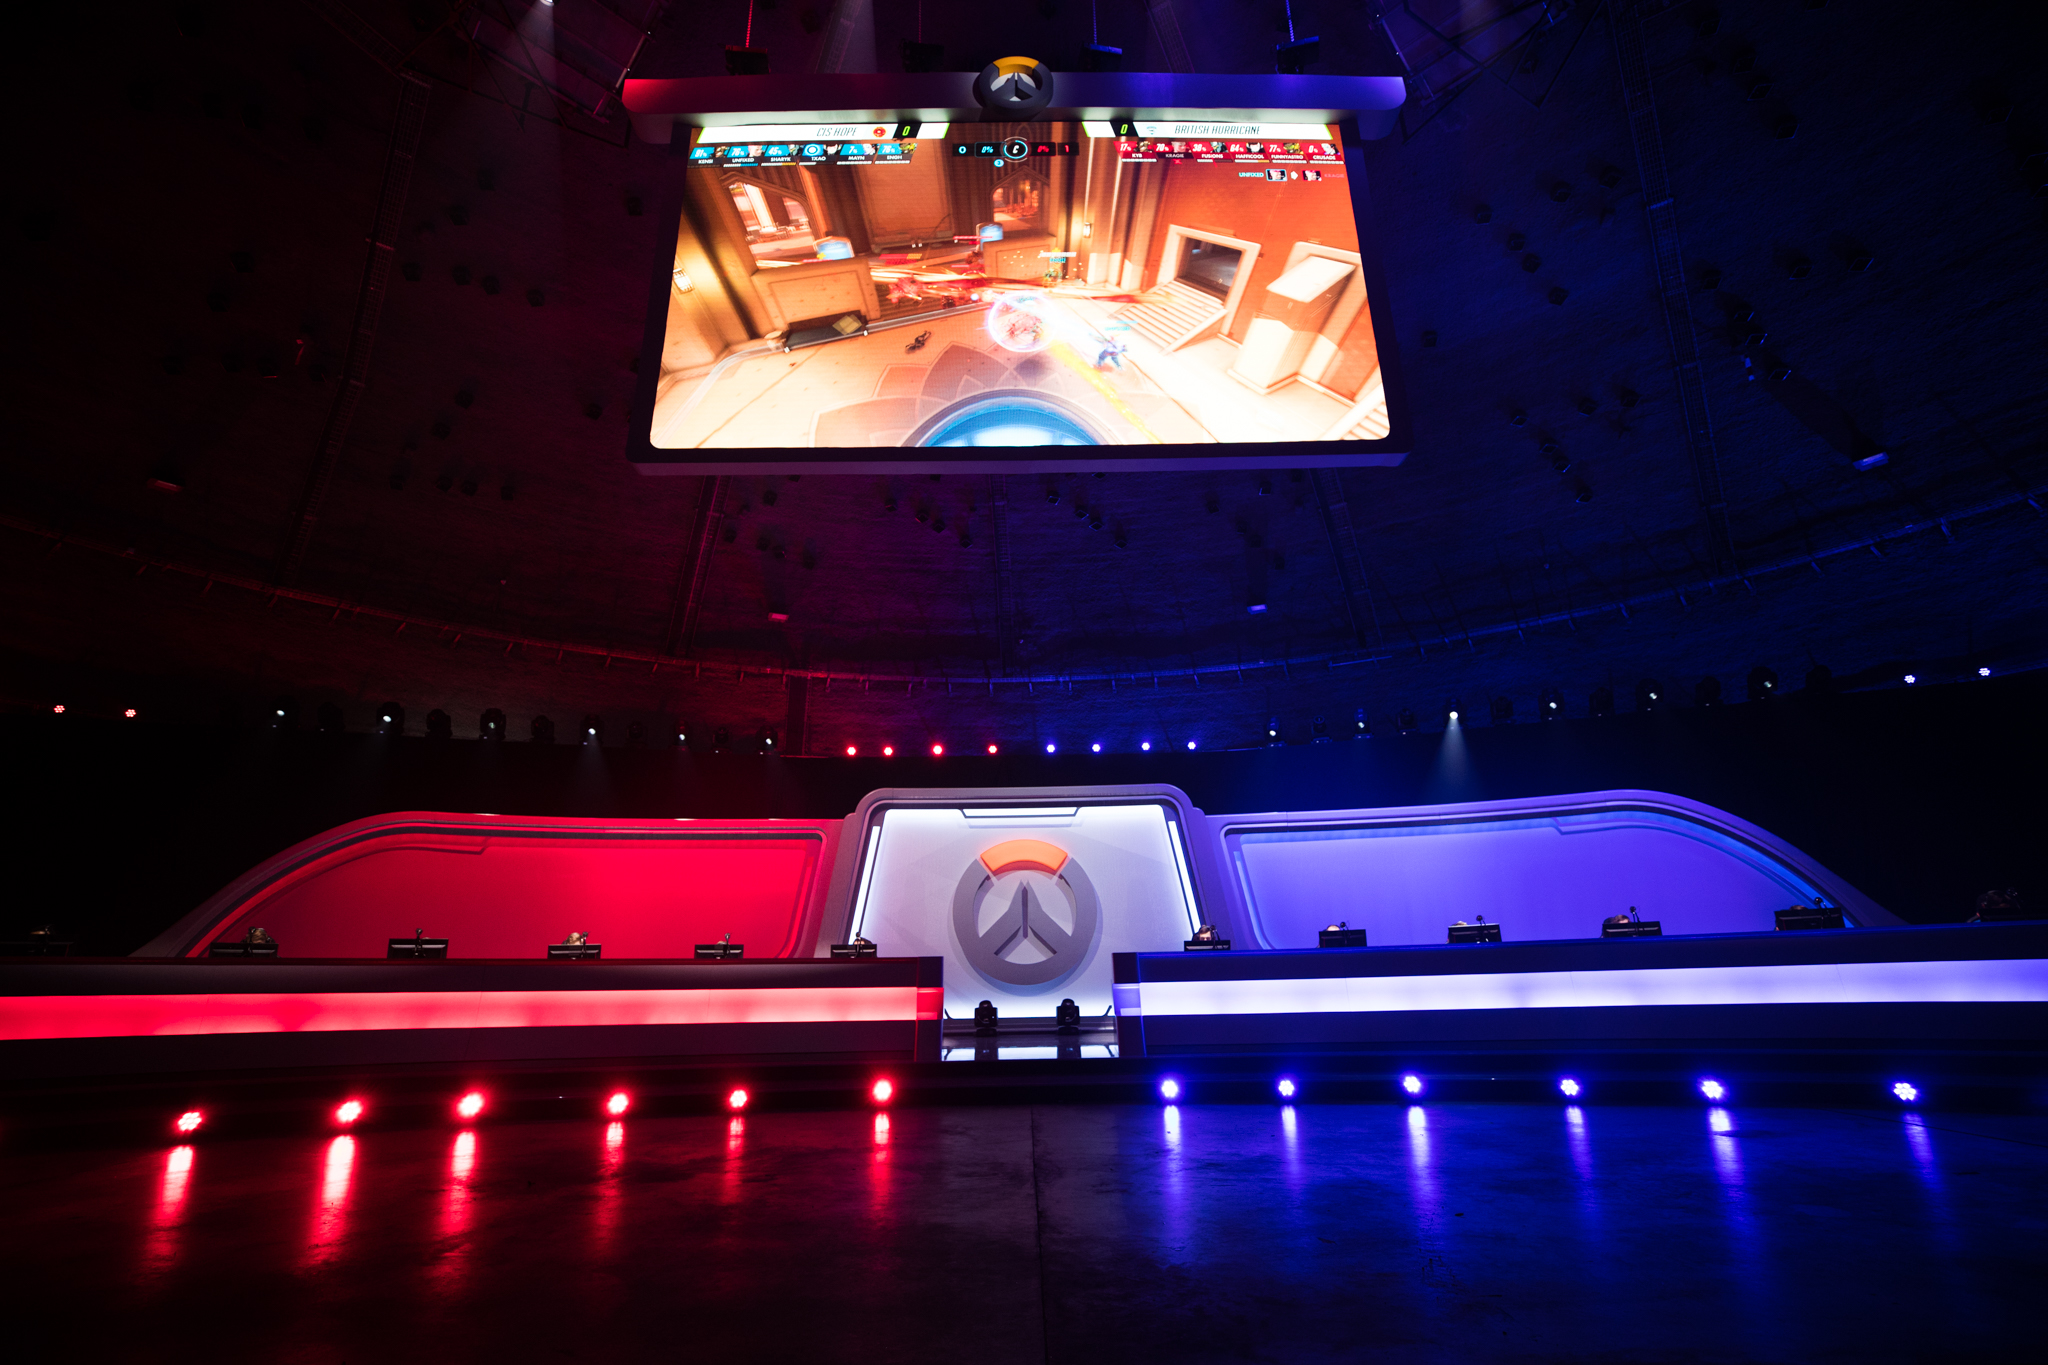 Overwatch Tier List 2020.Global Lead Of Overwatch Contenders Discusses 2020 Changes